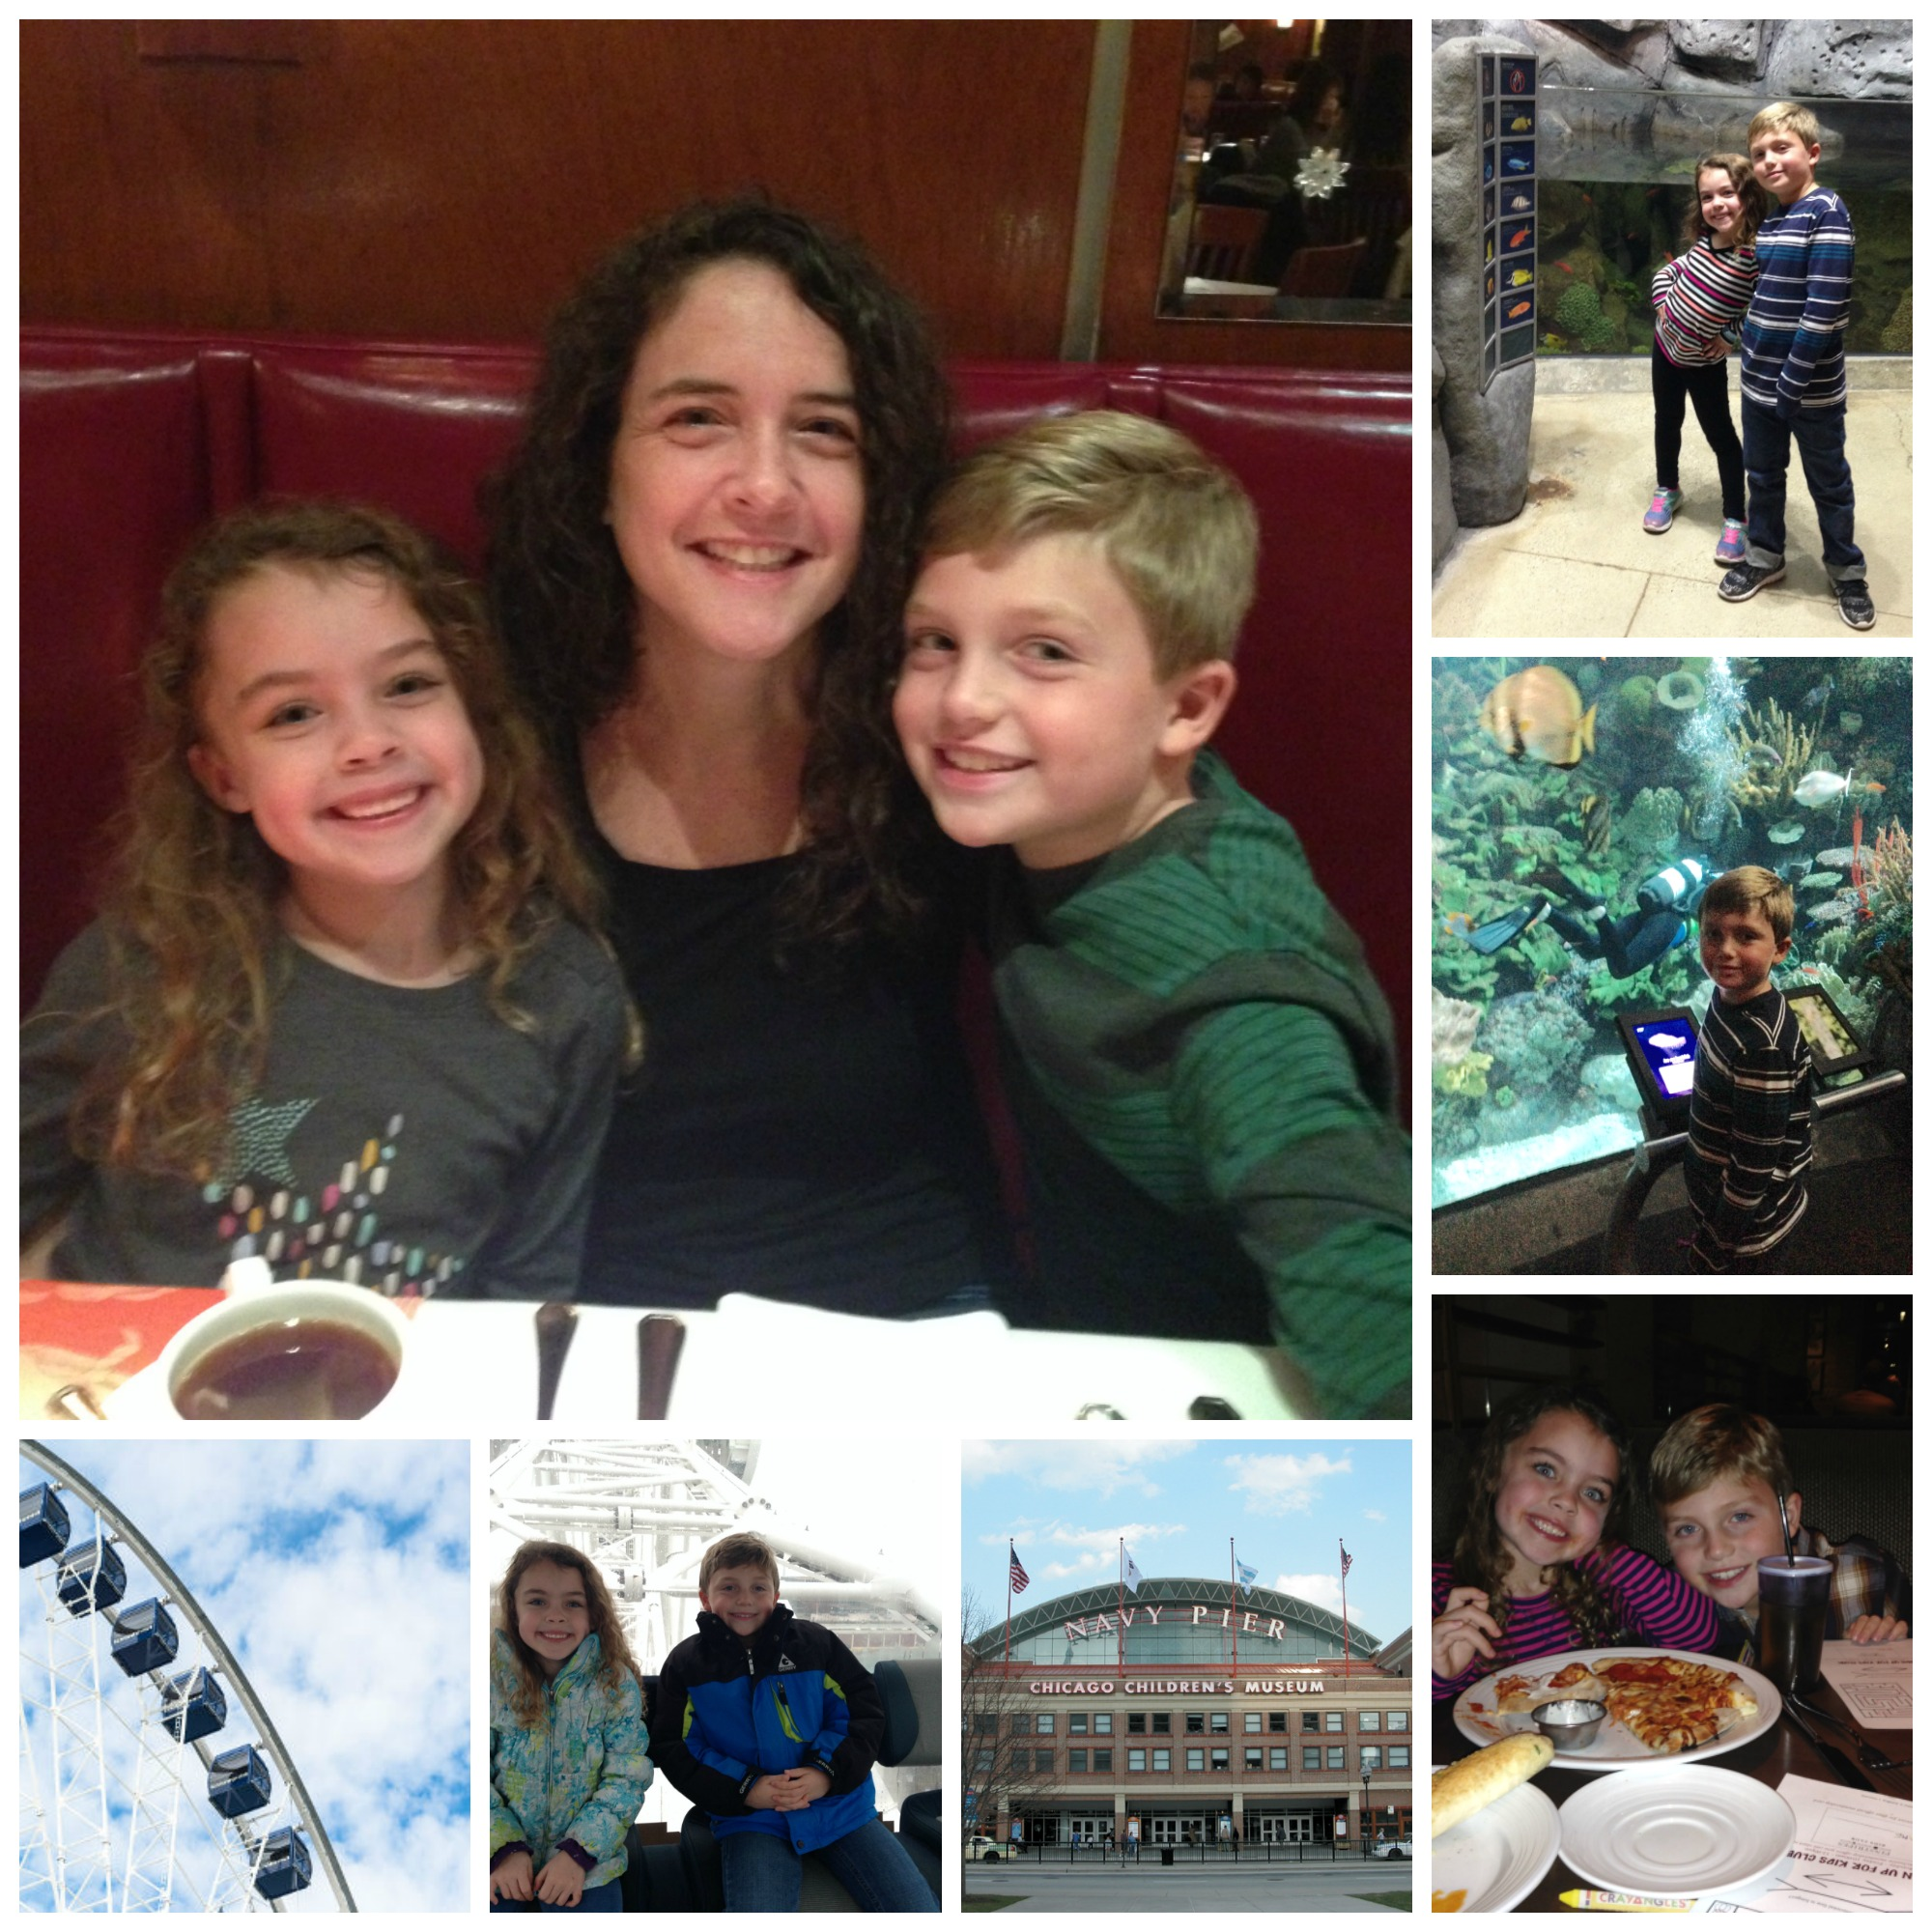 Family Weekend in Chicago- Where to stay, eat, & Play! ************ Chicago for family | Chicago with kids | things to do in Chicago with kids | Chicago Attractions | Chicago museums | Chicago restaurants | Chicago Navy Pier | Chicago hotels | Fun things to do in Chicago | Chicago for kids